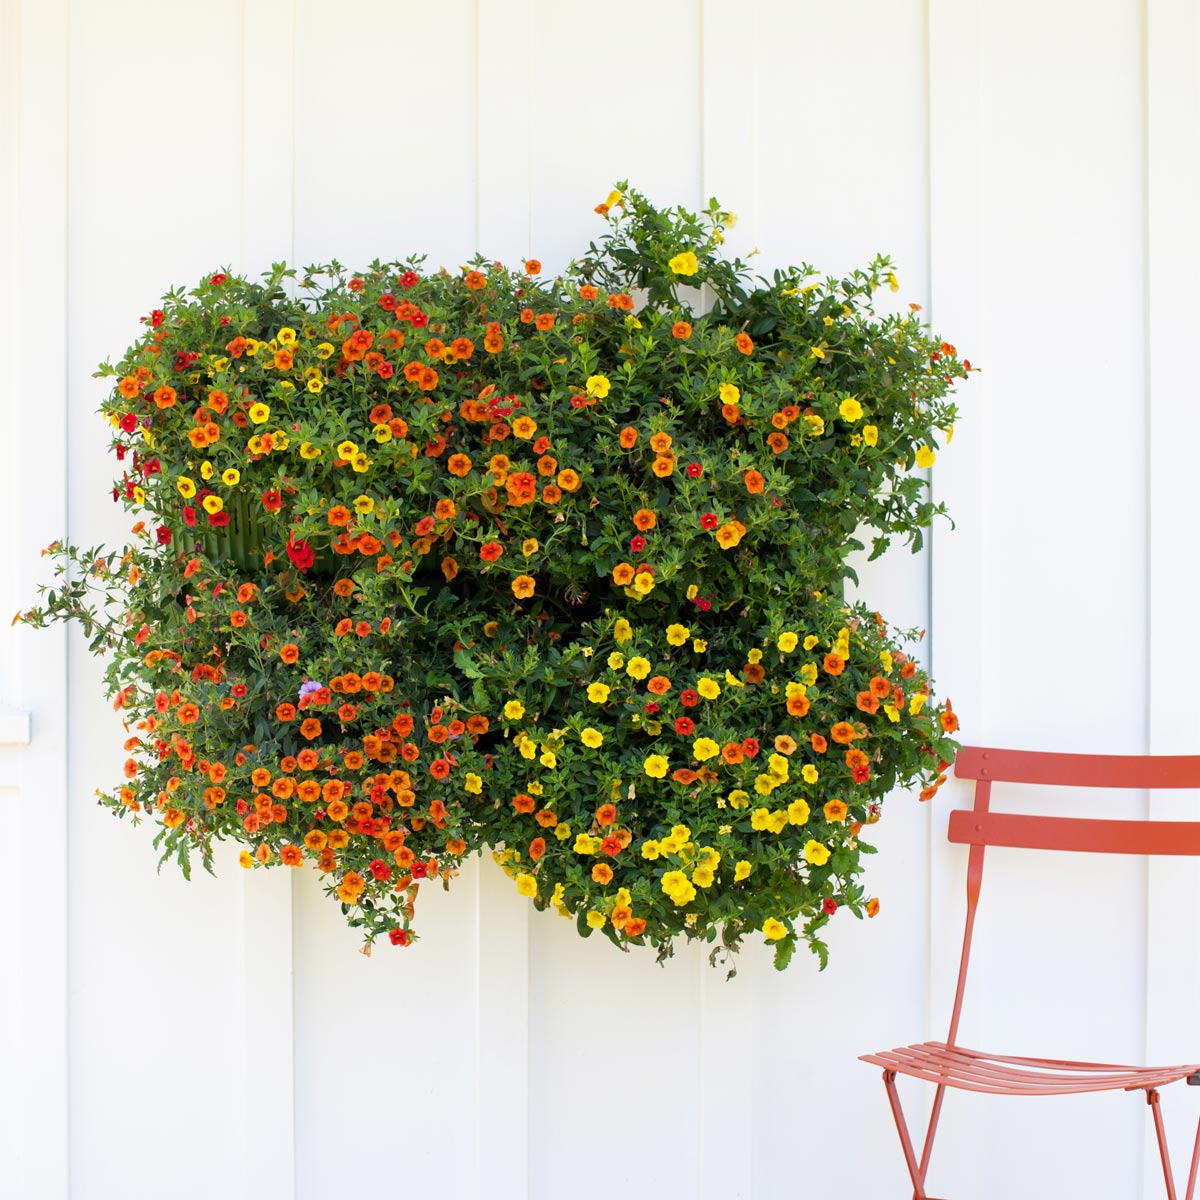 Make your wall a wall of plants with Woolly wall planters. Your vertical garden will add a unique touch to your décor.